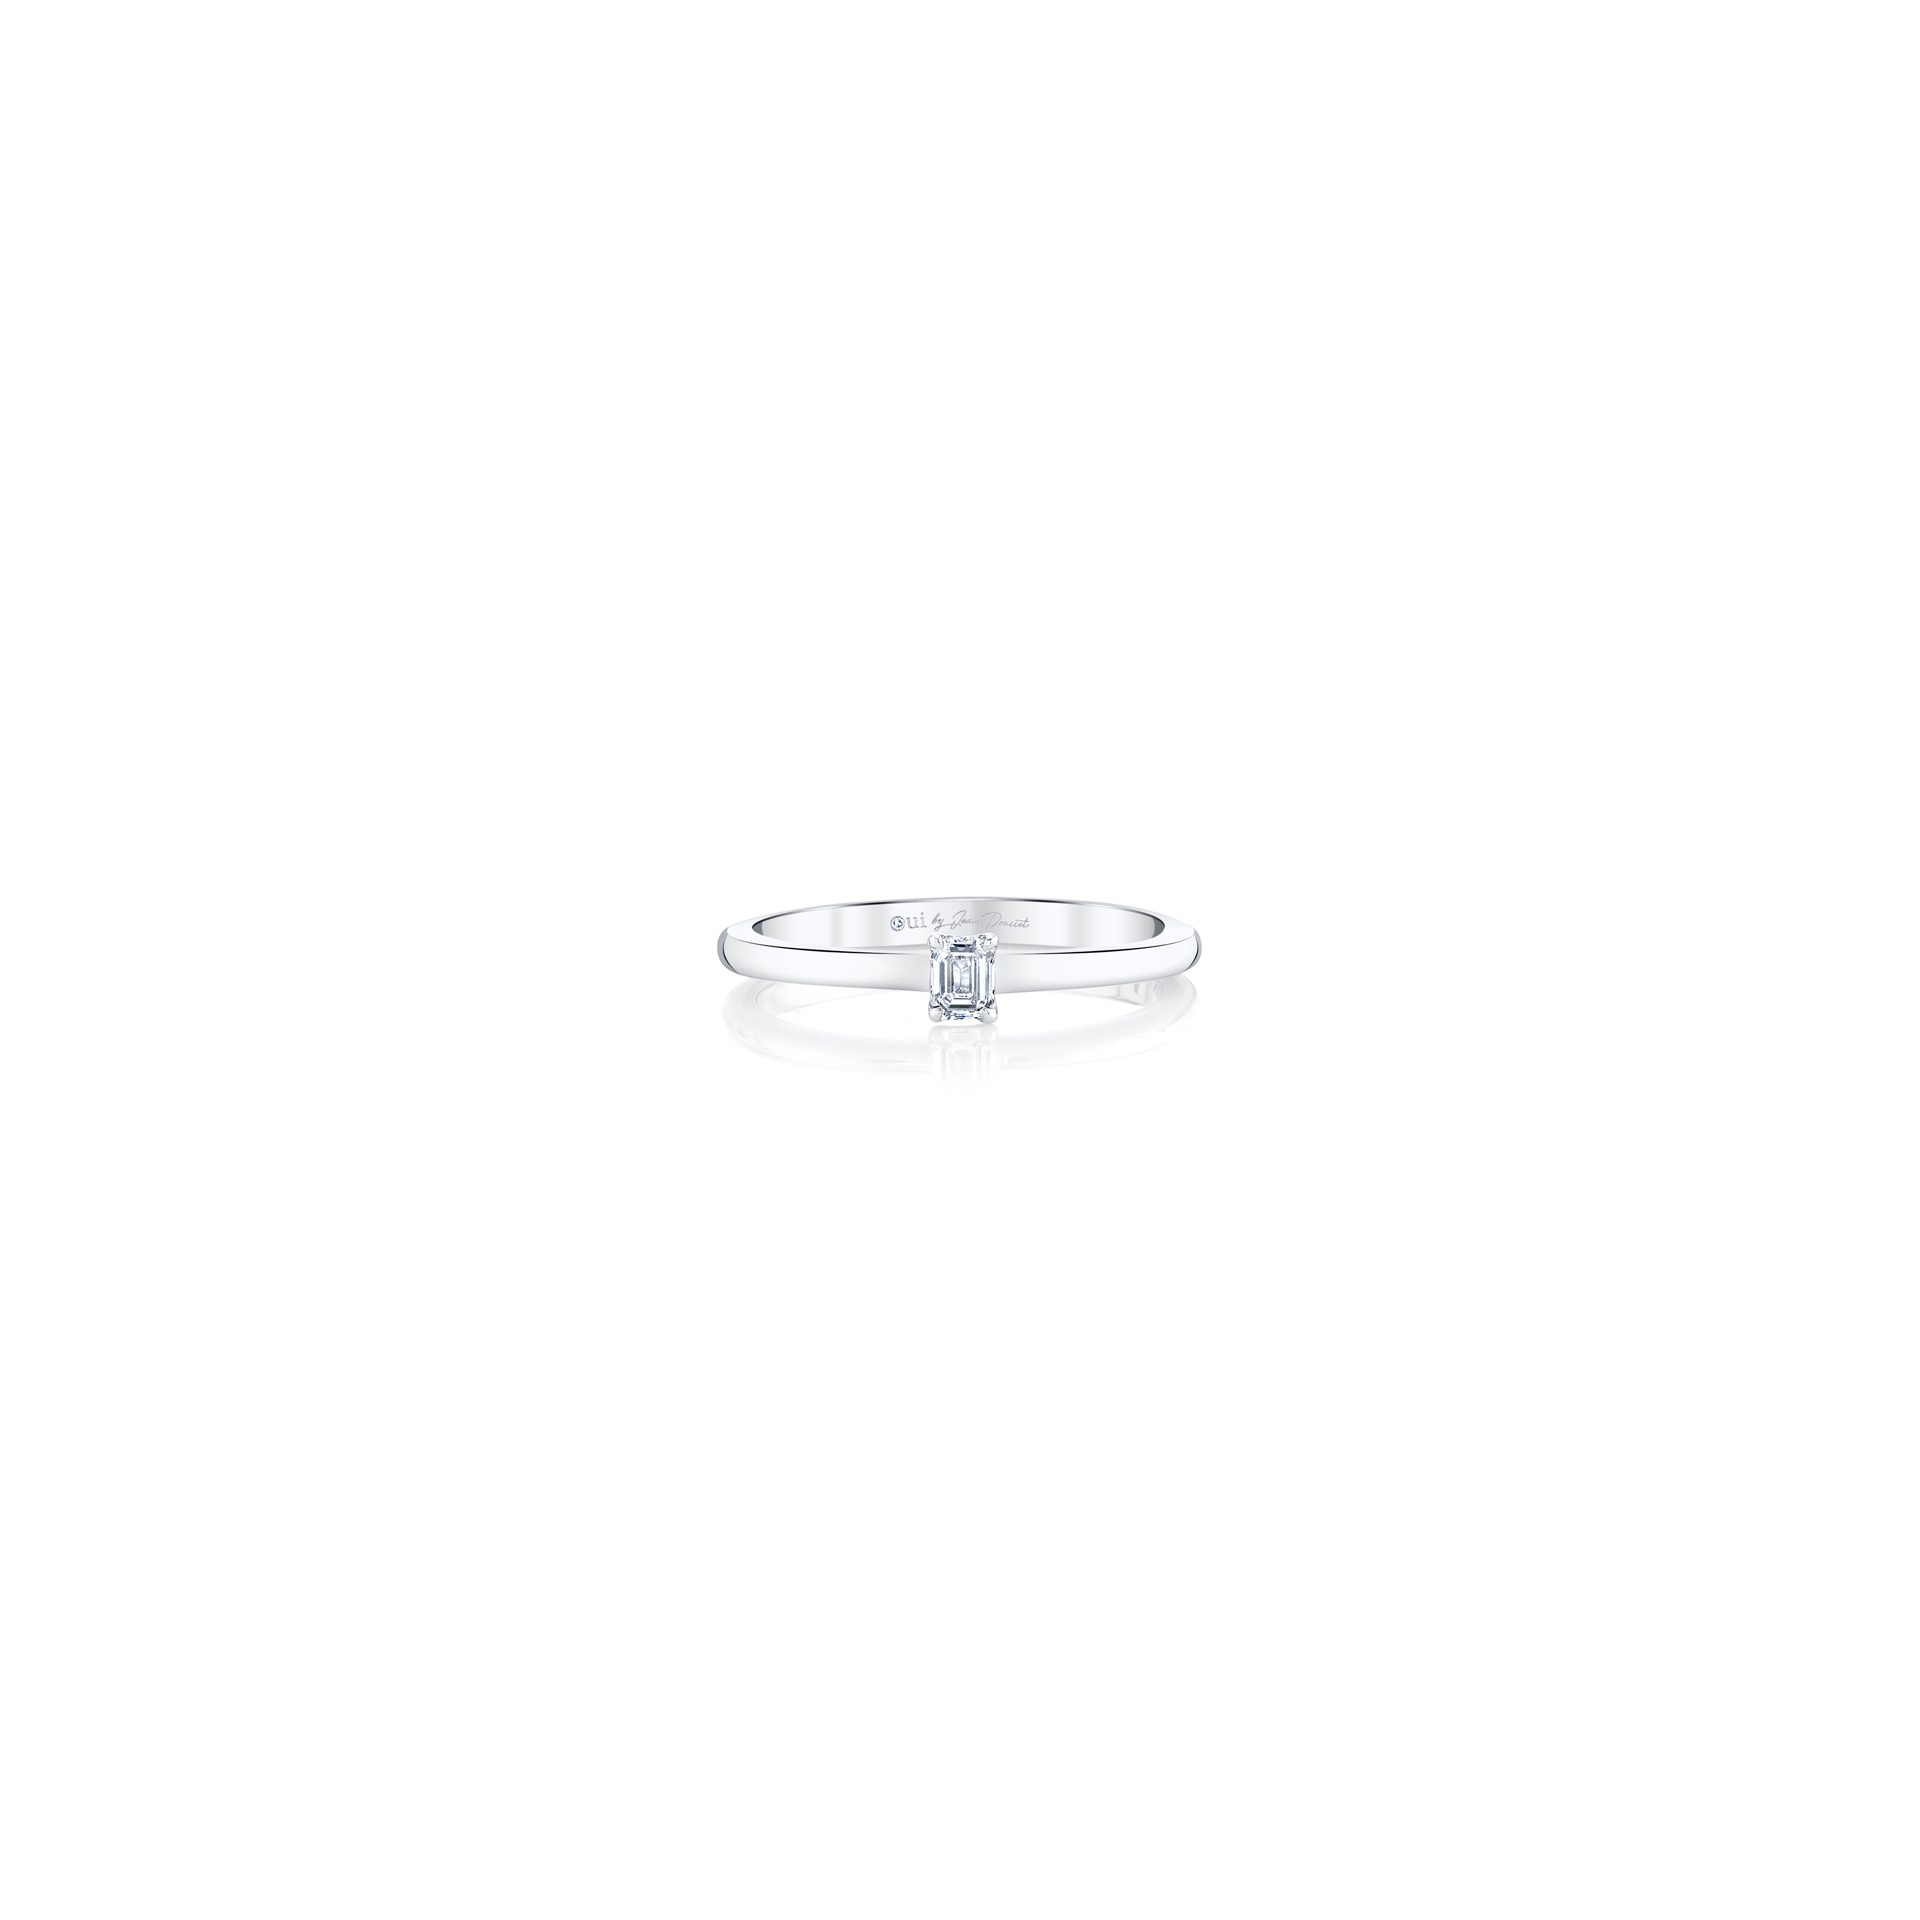 La Petite Emerald Diamond Wedding Band in 18k White Gold Front View by Oui by Jean Dousset